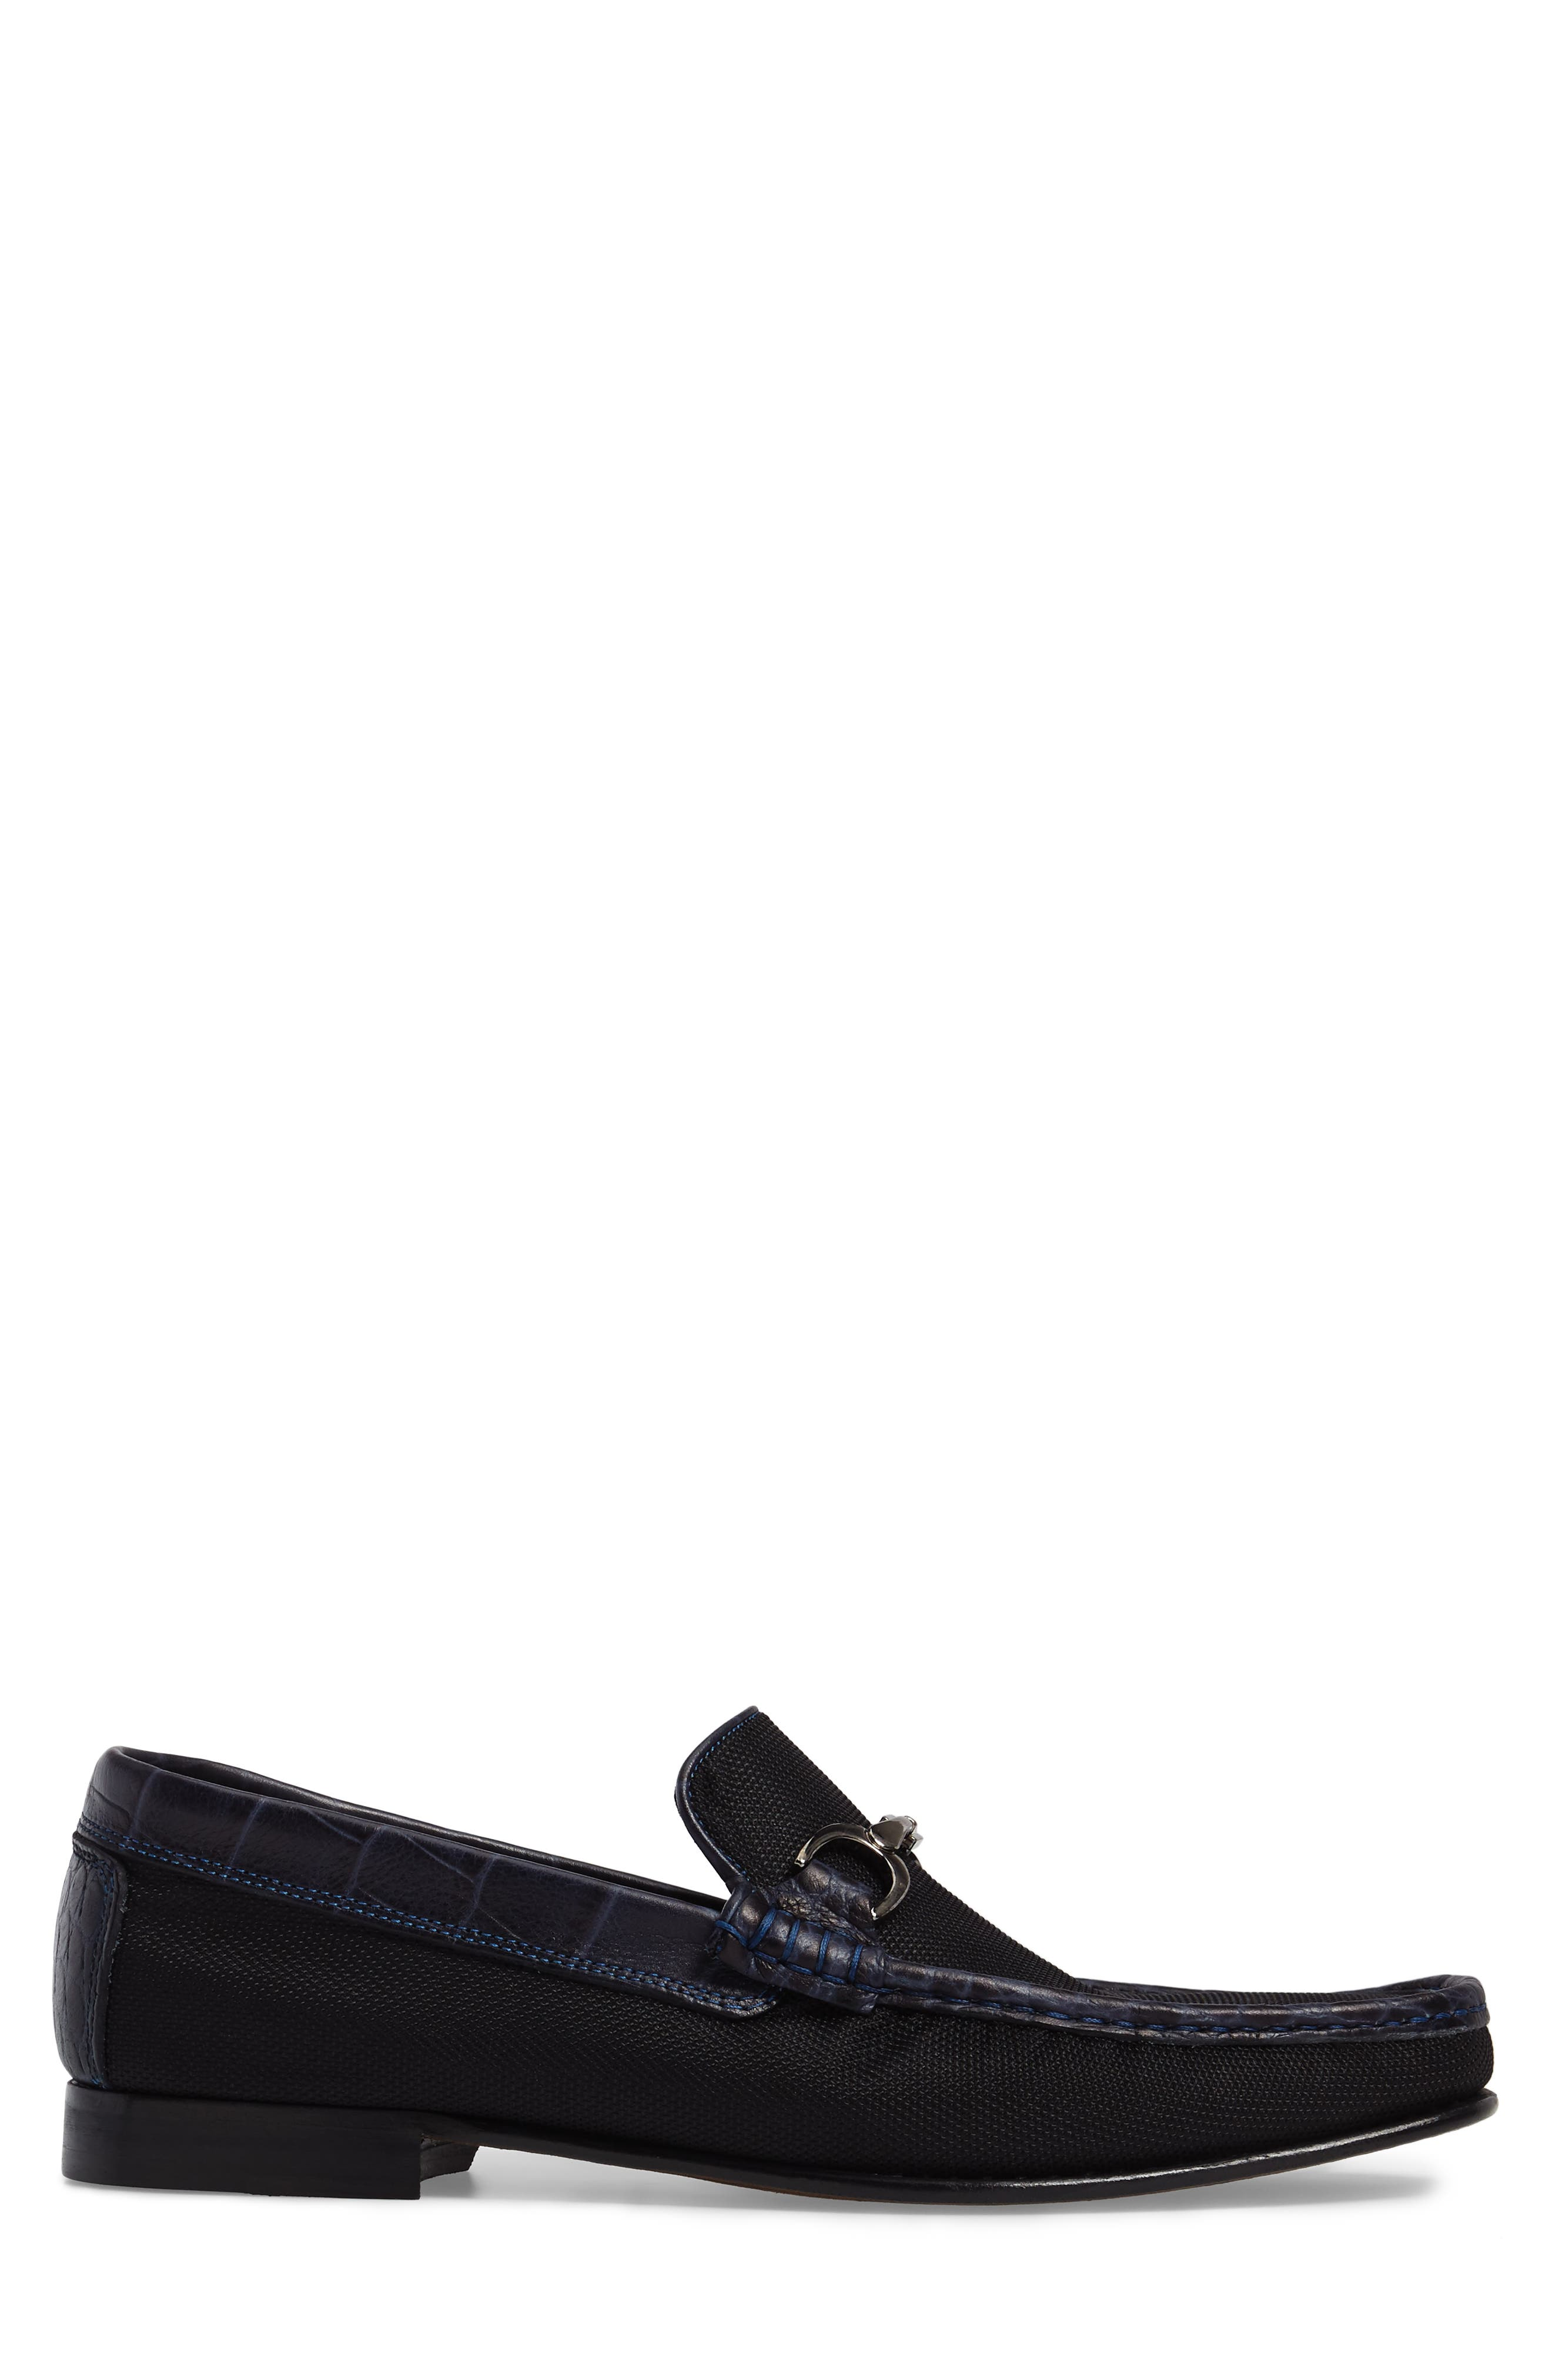 Darrin Embossed Loafer,                             Alternate thumbnail 3, color,                             001